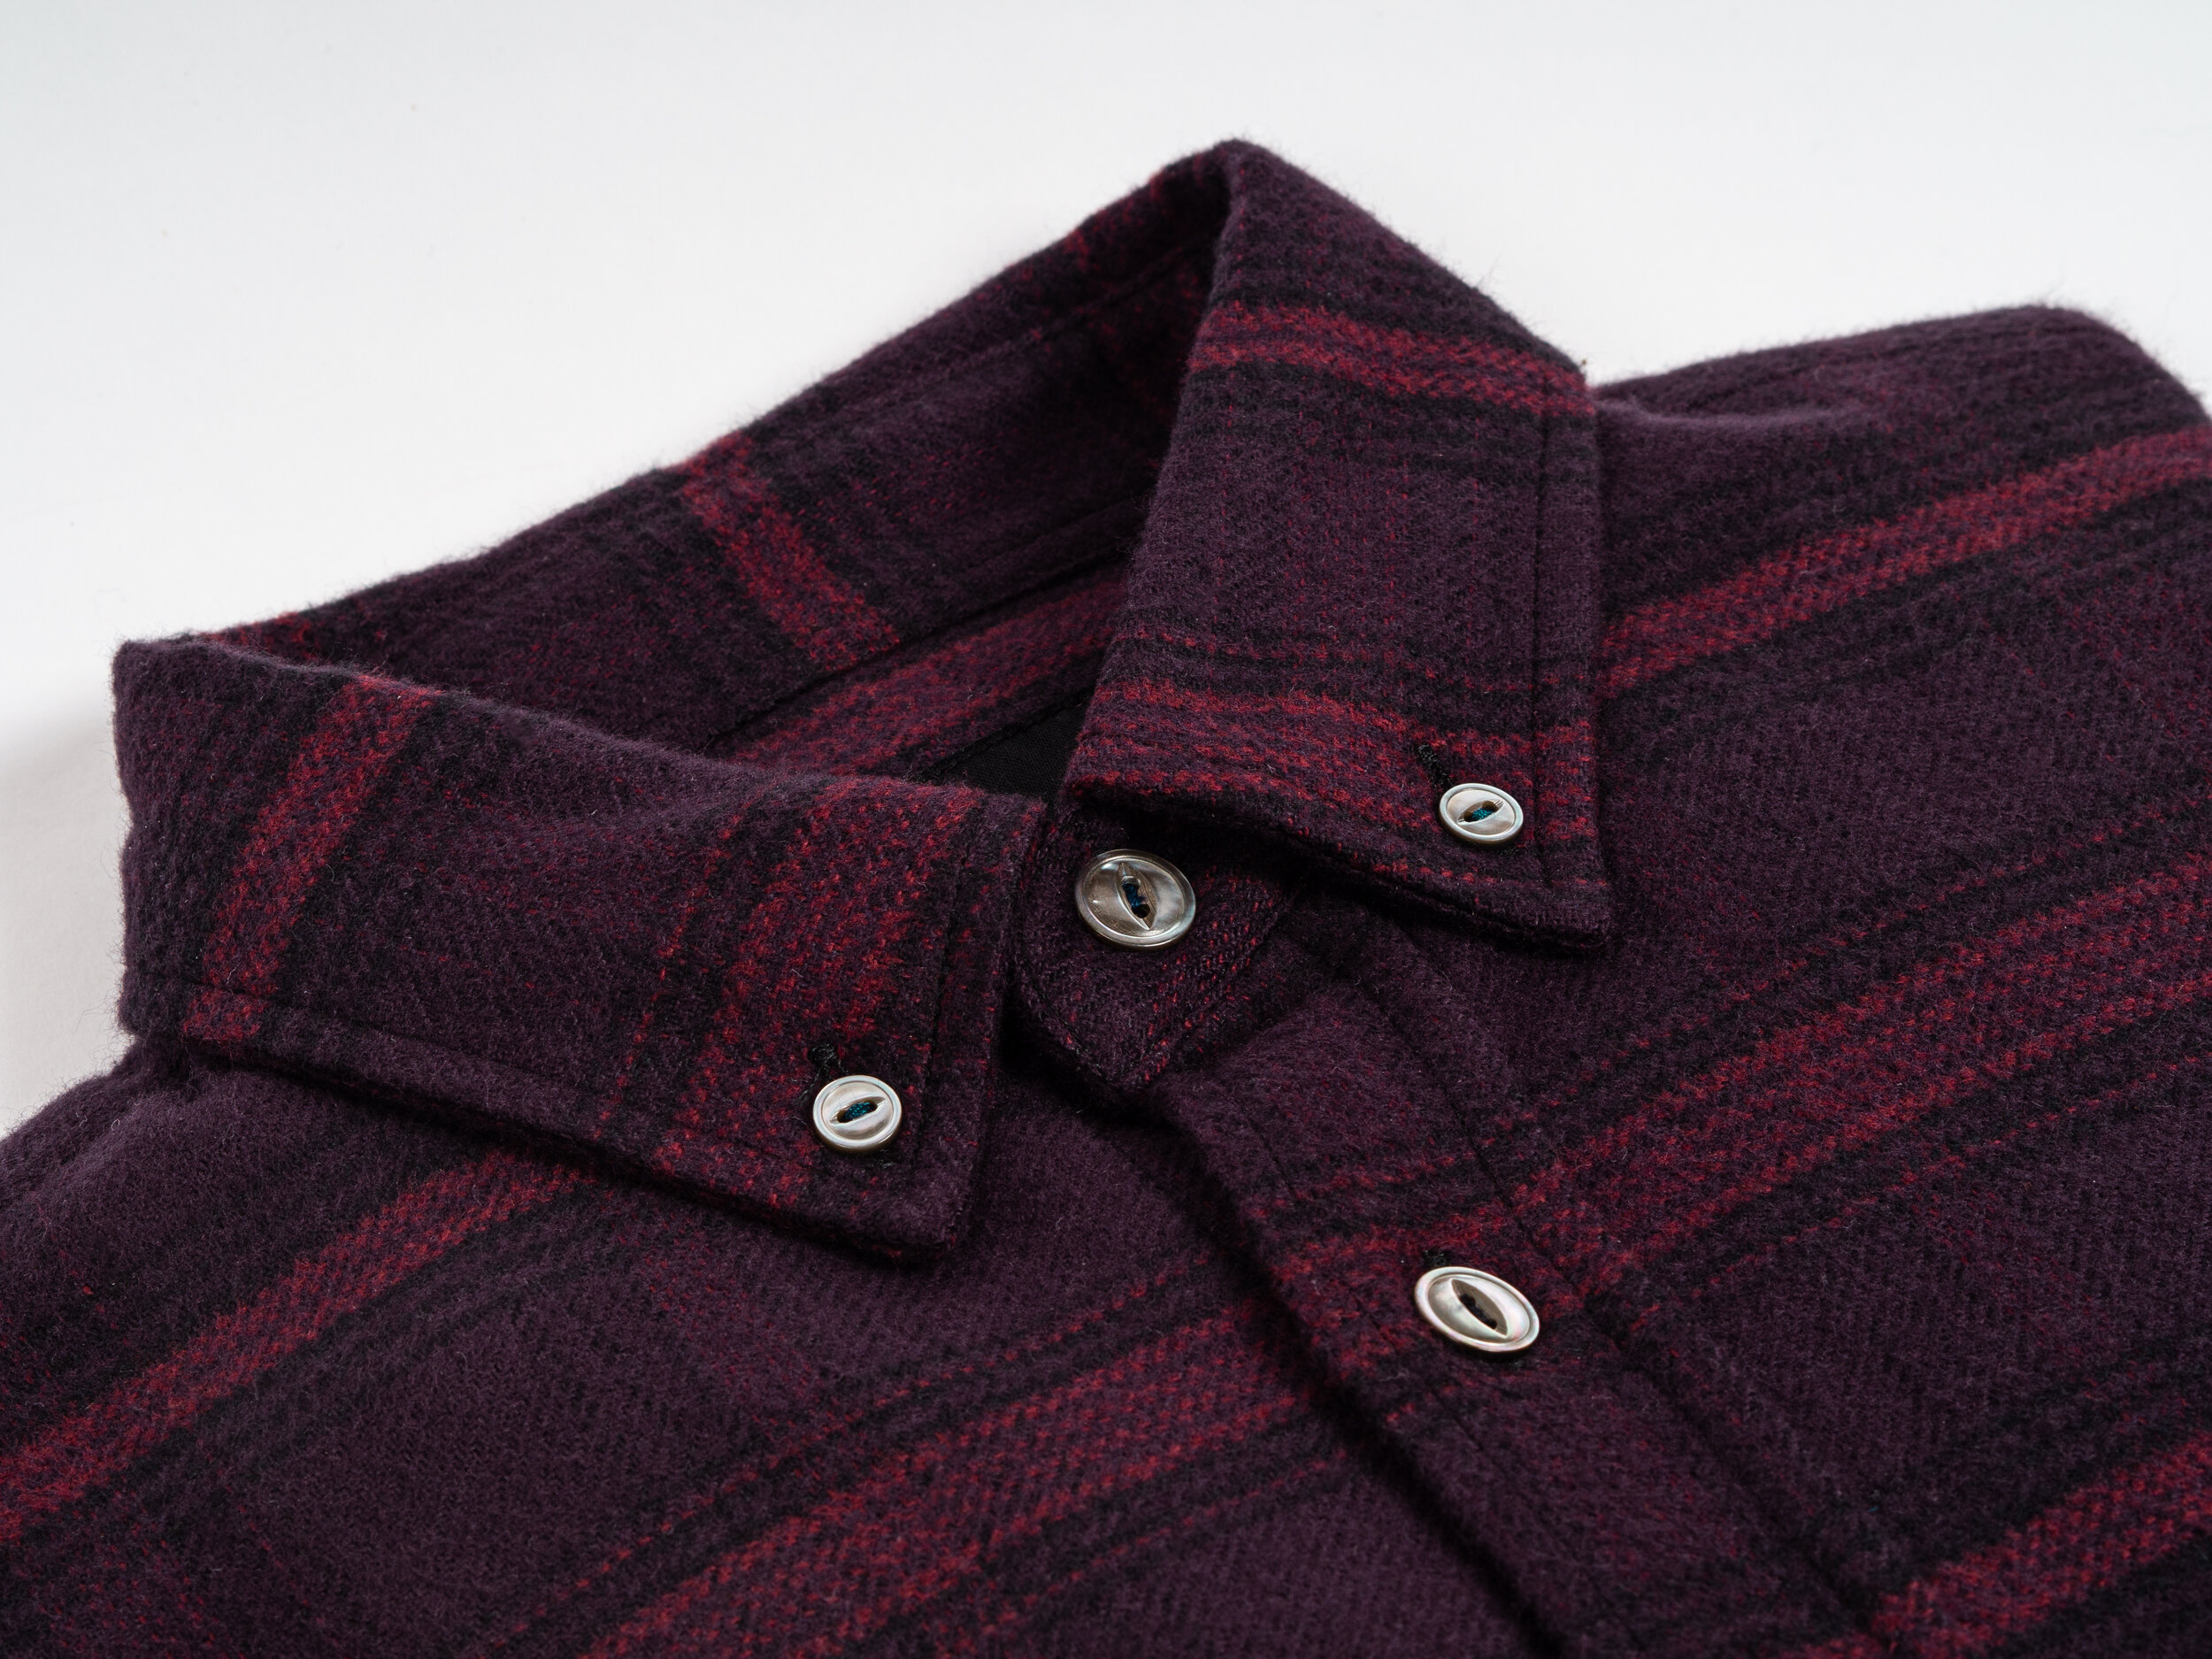 Outclass Flannel Shirting - For Fall '19, Outclass' shirting collection includes a variety of warm, Portuguese flannels, and a 'multi-colour nep' charcoal twill. The shirts all feature mother of pearl buttons, double needle seams, and button down collars. Outclass' oxford fit remains comfortable, though with a tailored look and feel. Outclass' shirting is proudly made in Canada.